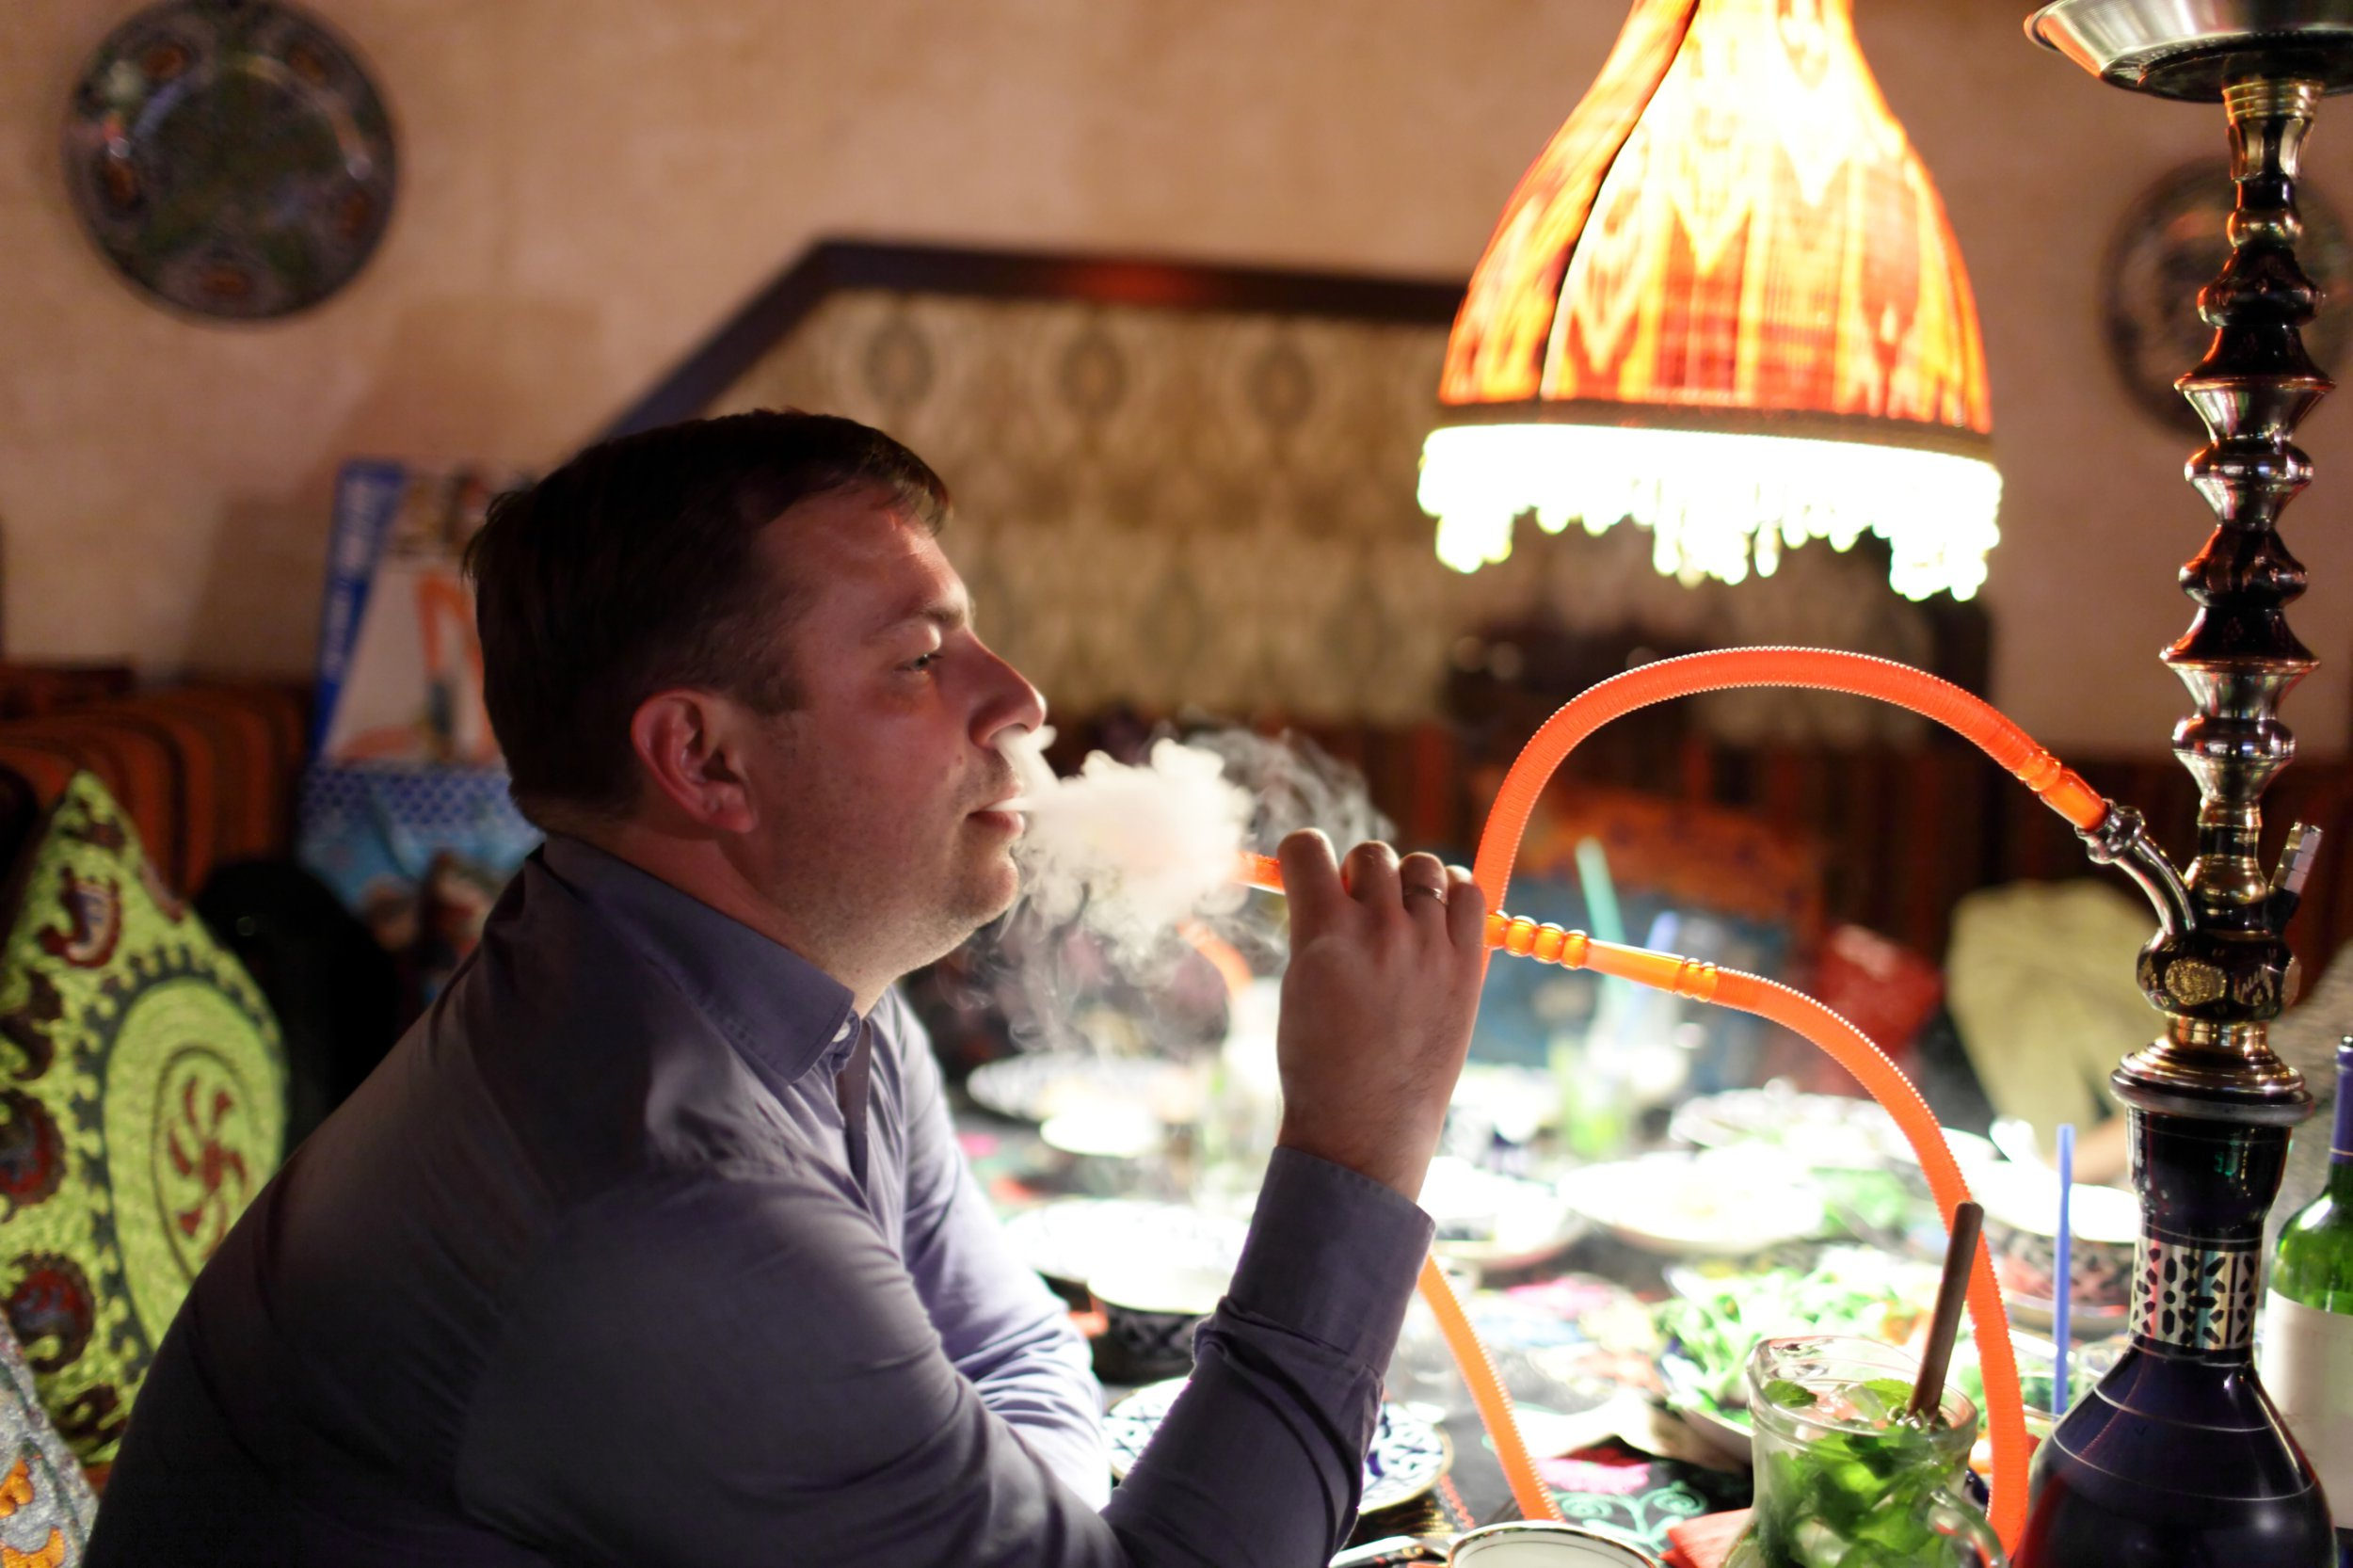 One shisha session 'is worse than smoking entire pack of cigarettes'